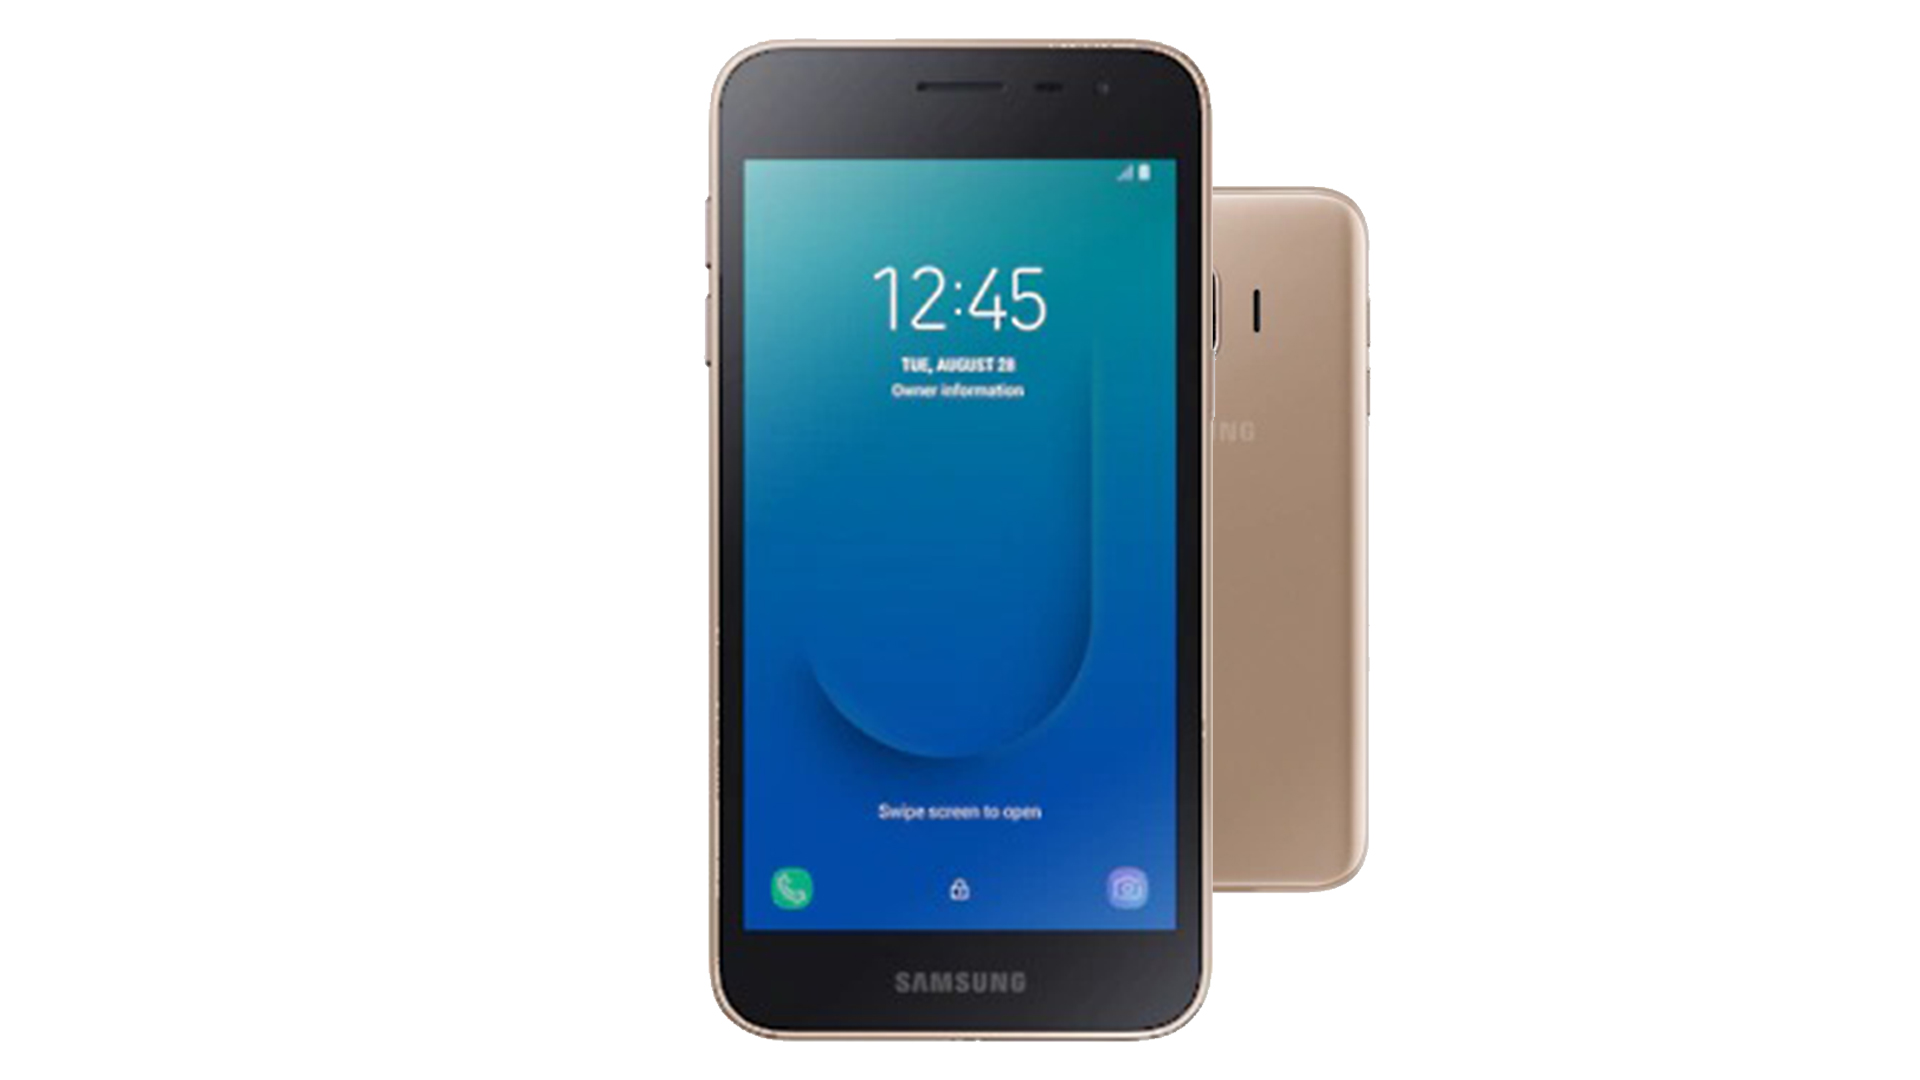 Samsung Galaxy J2 Core (2020): ультрабюджетник с 1 ГБ ОЗУ, 5 дисплеем и Android 8 Go edition всего за $83